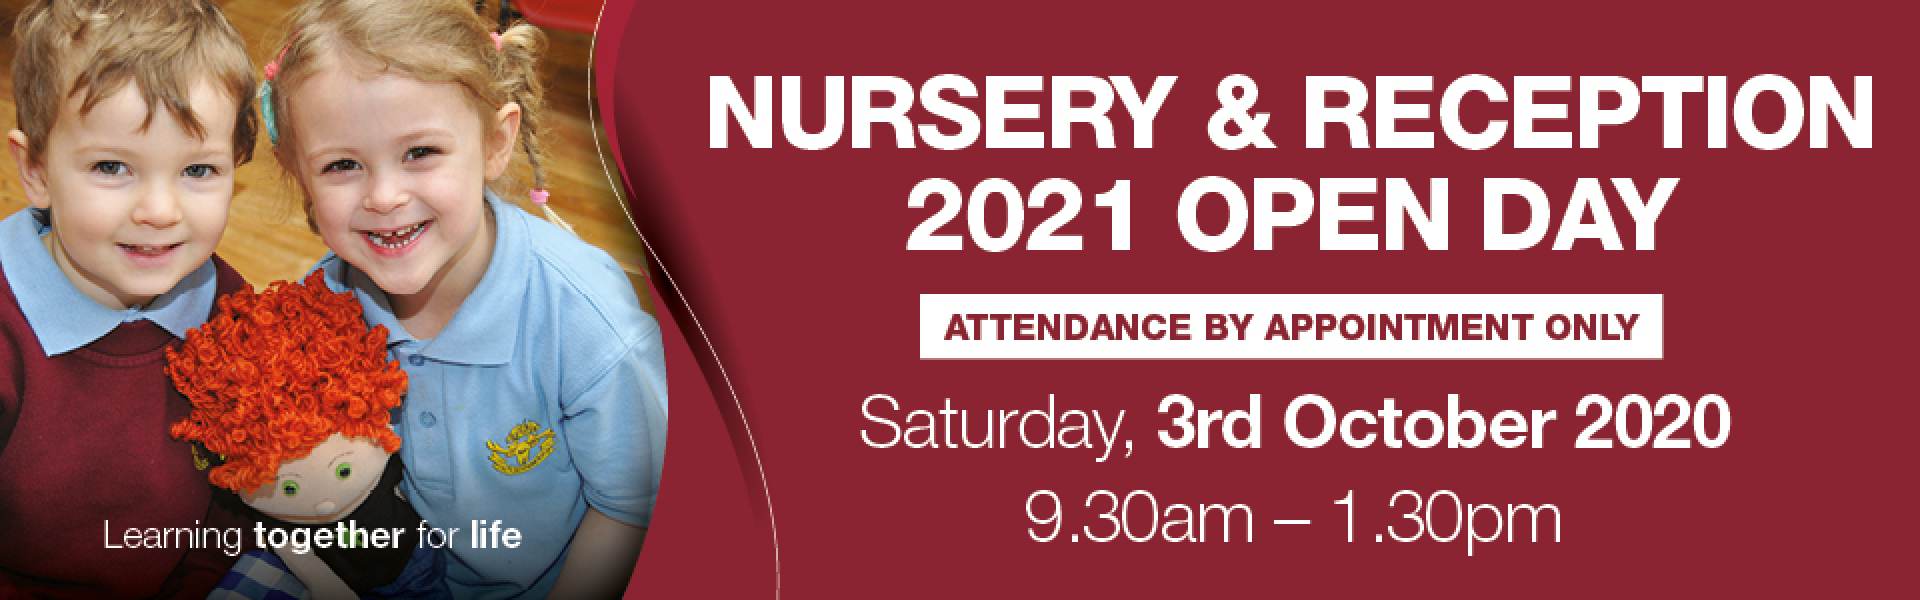 Open Day 3 Oct 2020